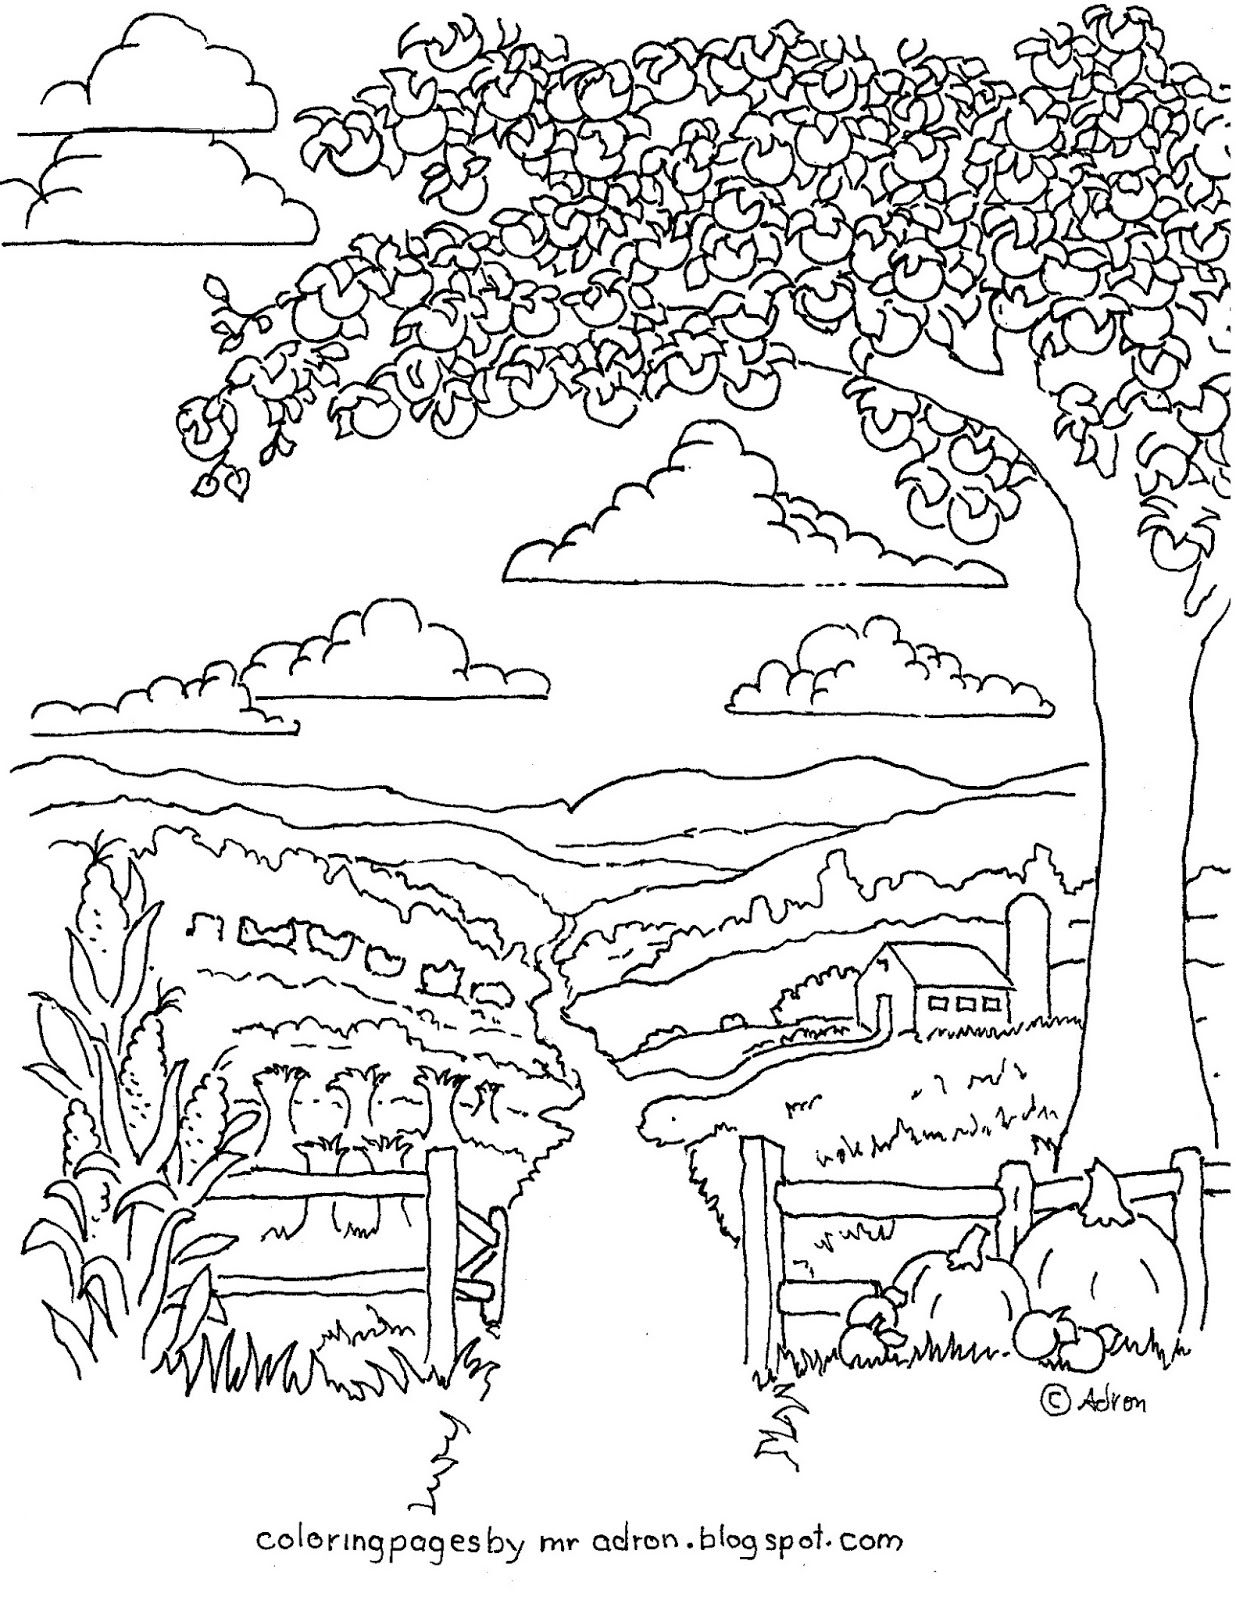 Coloring Pages For Kids By Mr Adron Printable Autumn Harvest Coloring Picture With Farm And